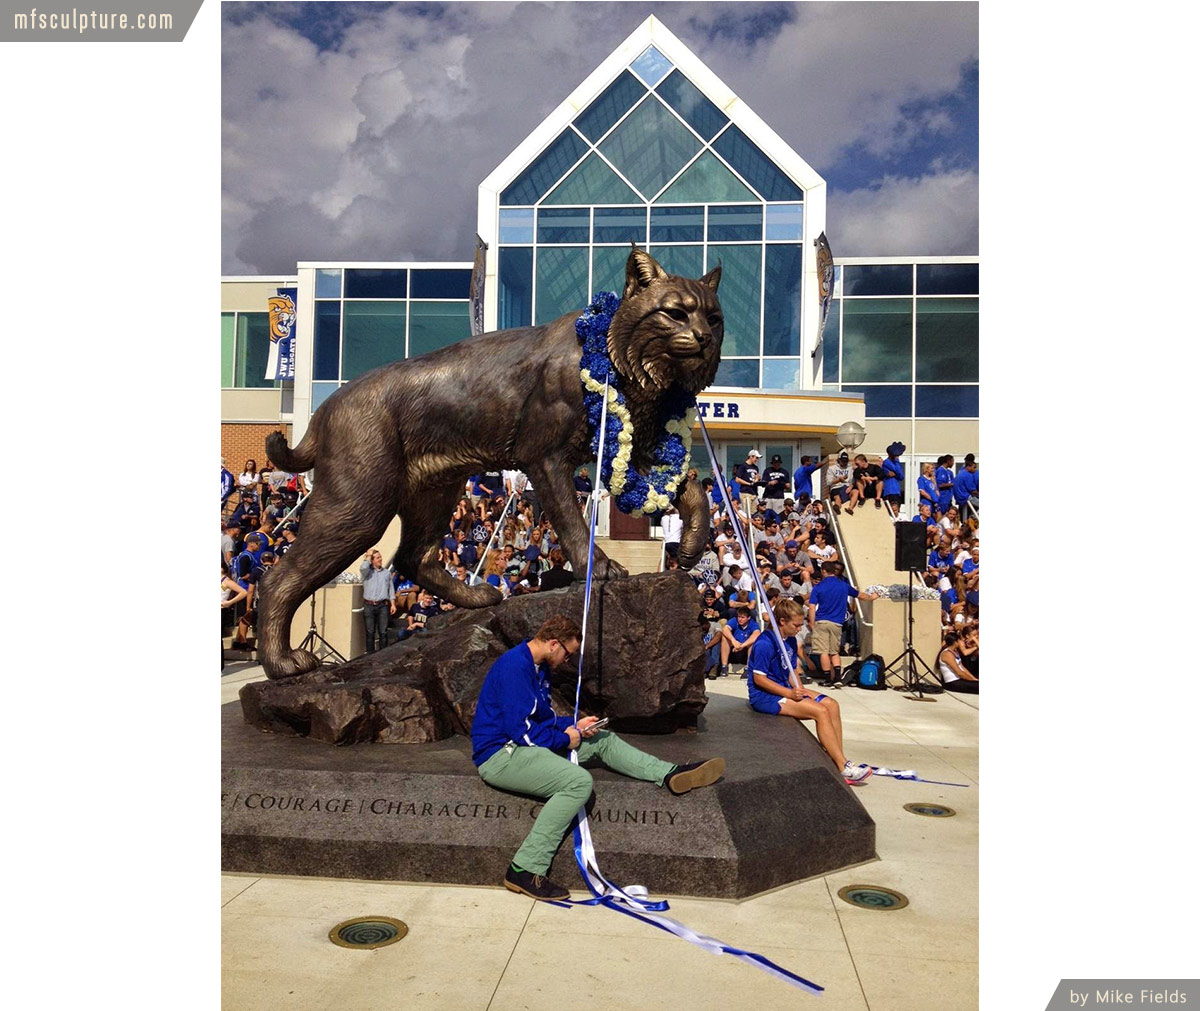 University Wildcat Sculpture Mascot Stadium Public Art